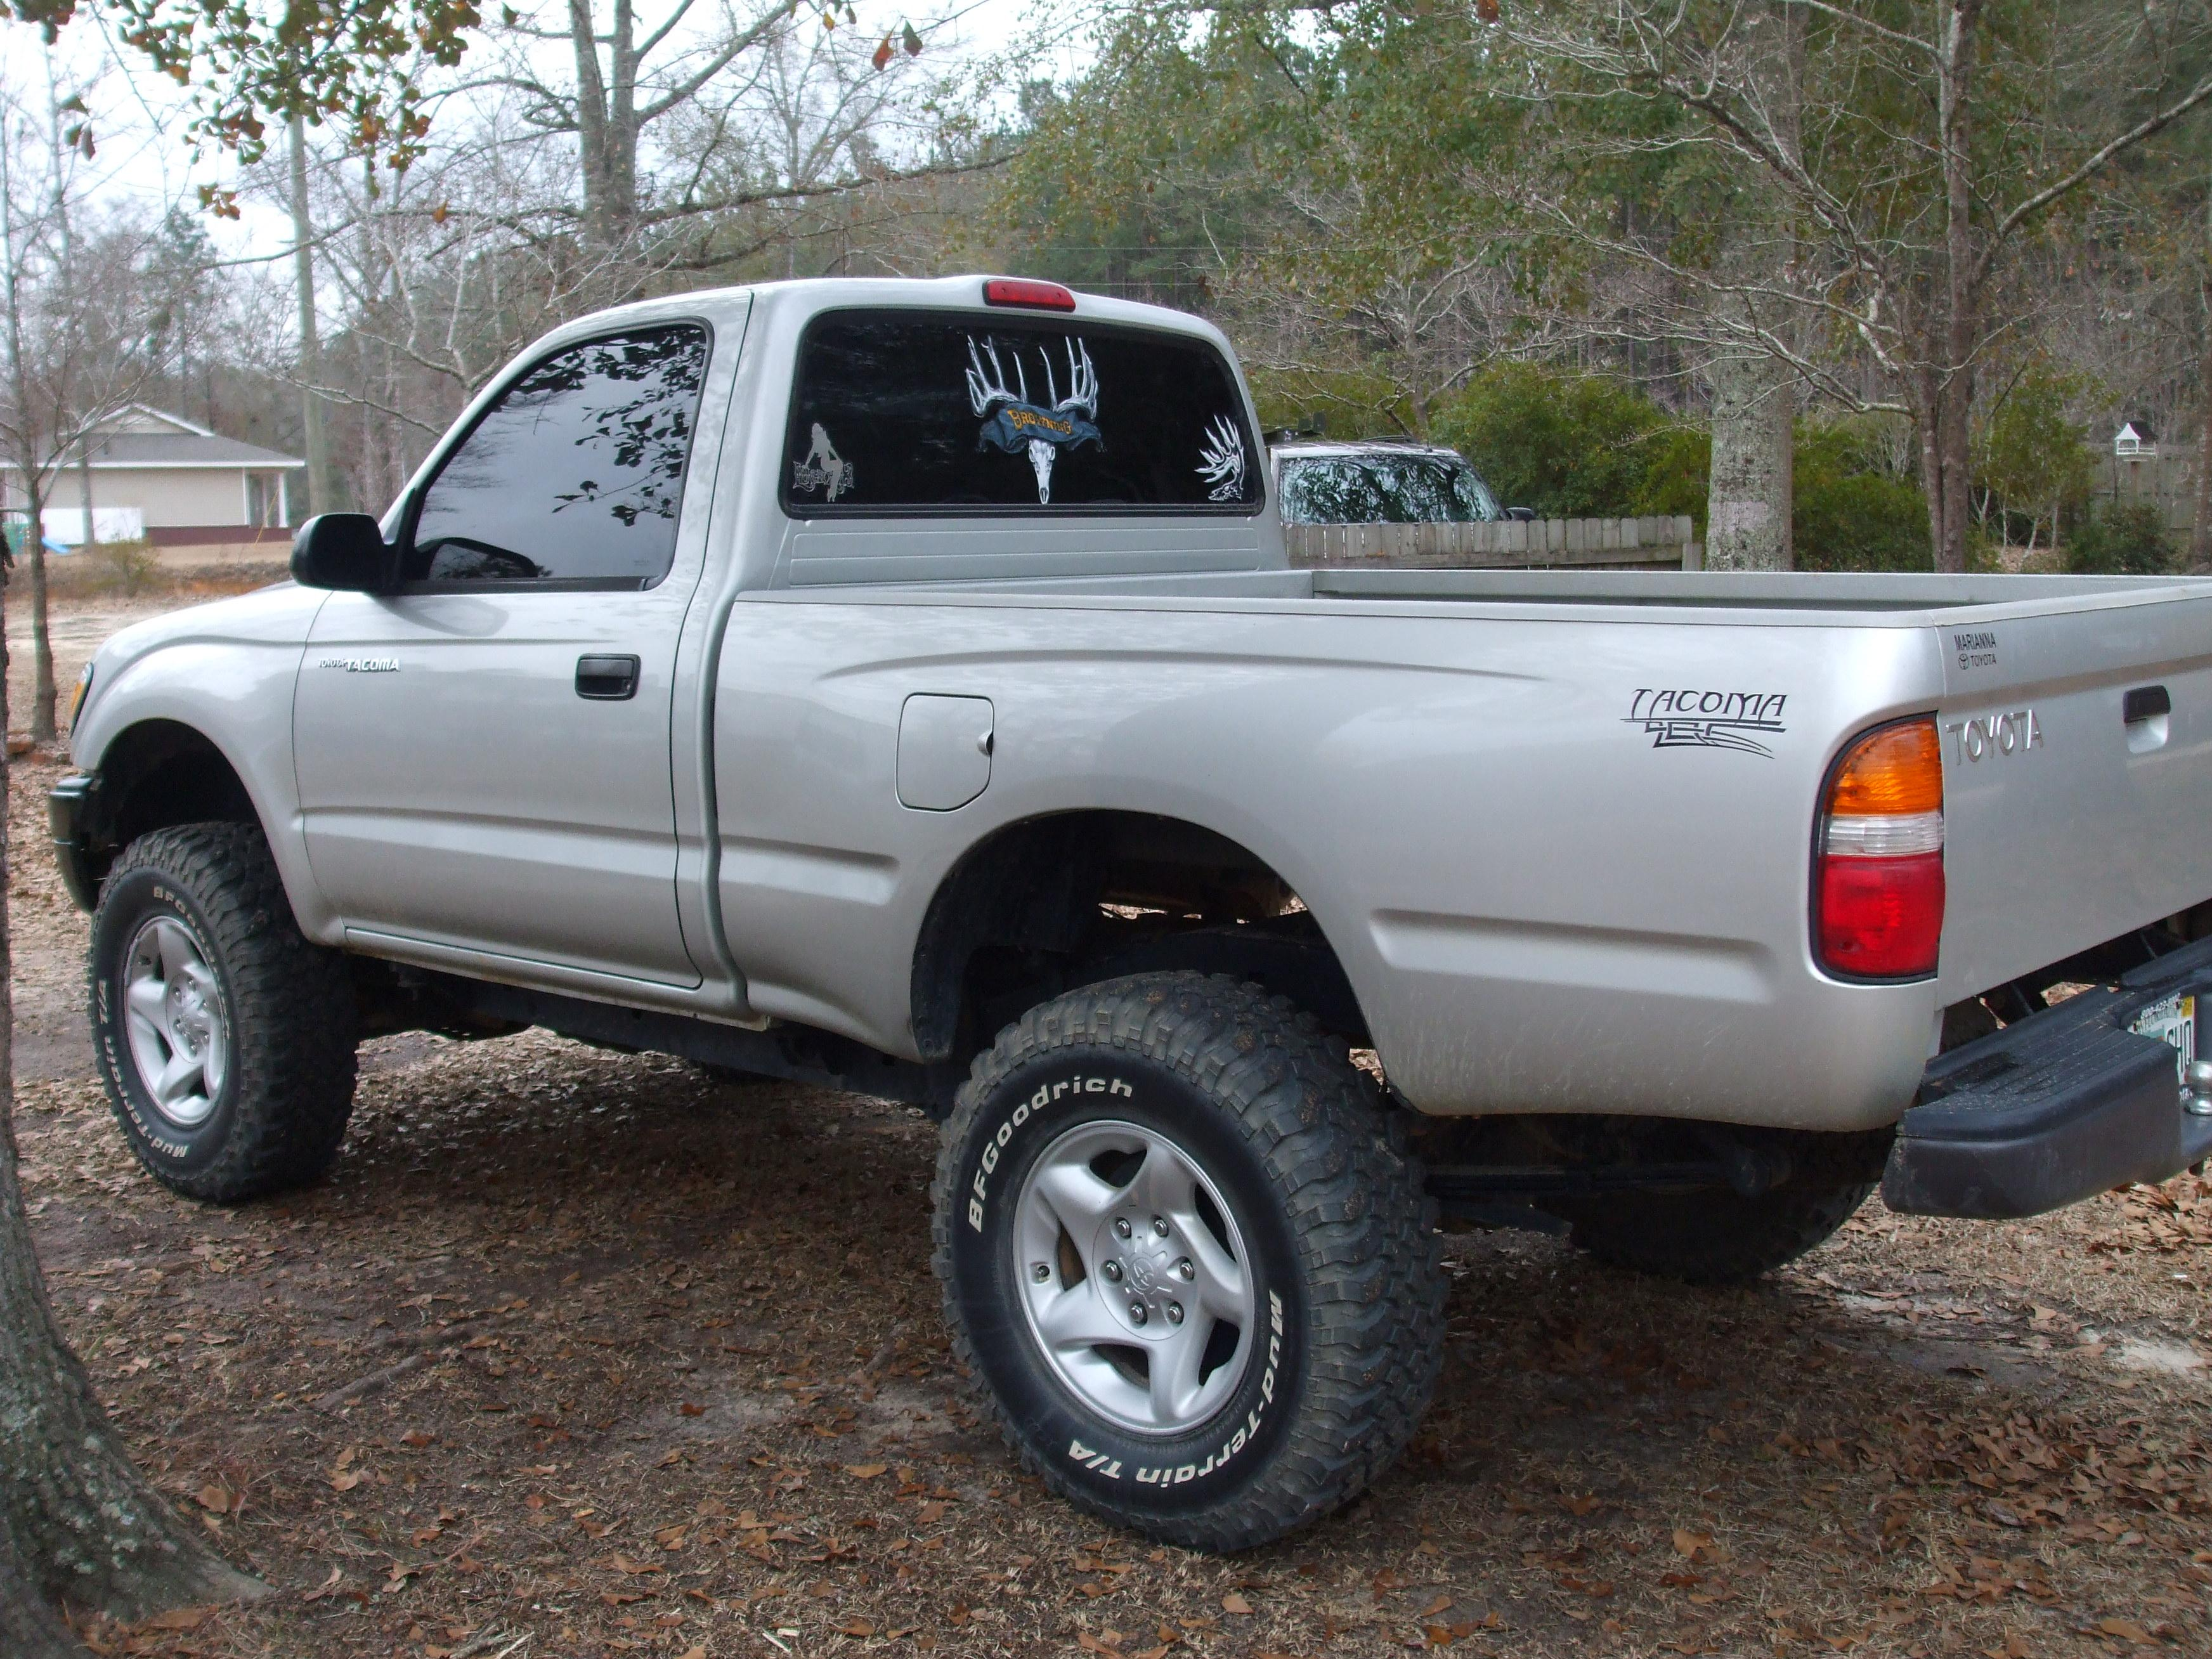 COUNTRY07's 2001 Toyota Tacoma Regular Cab